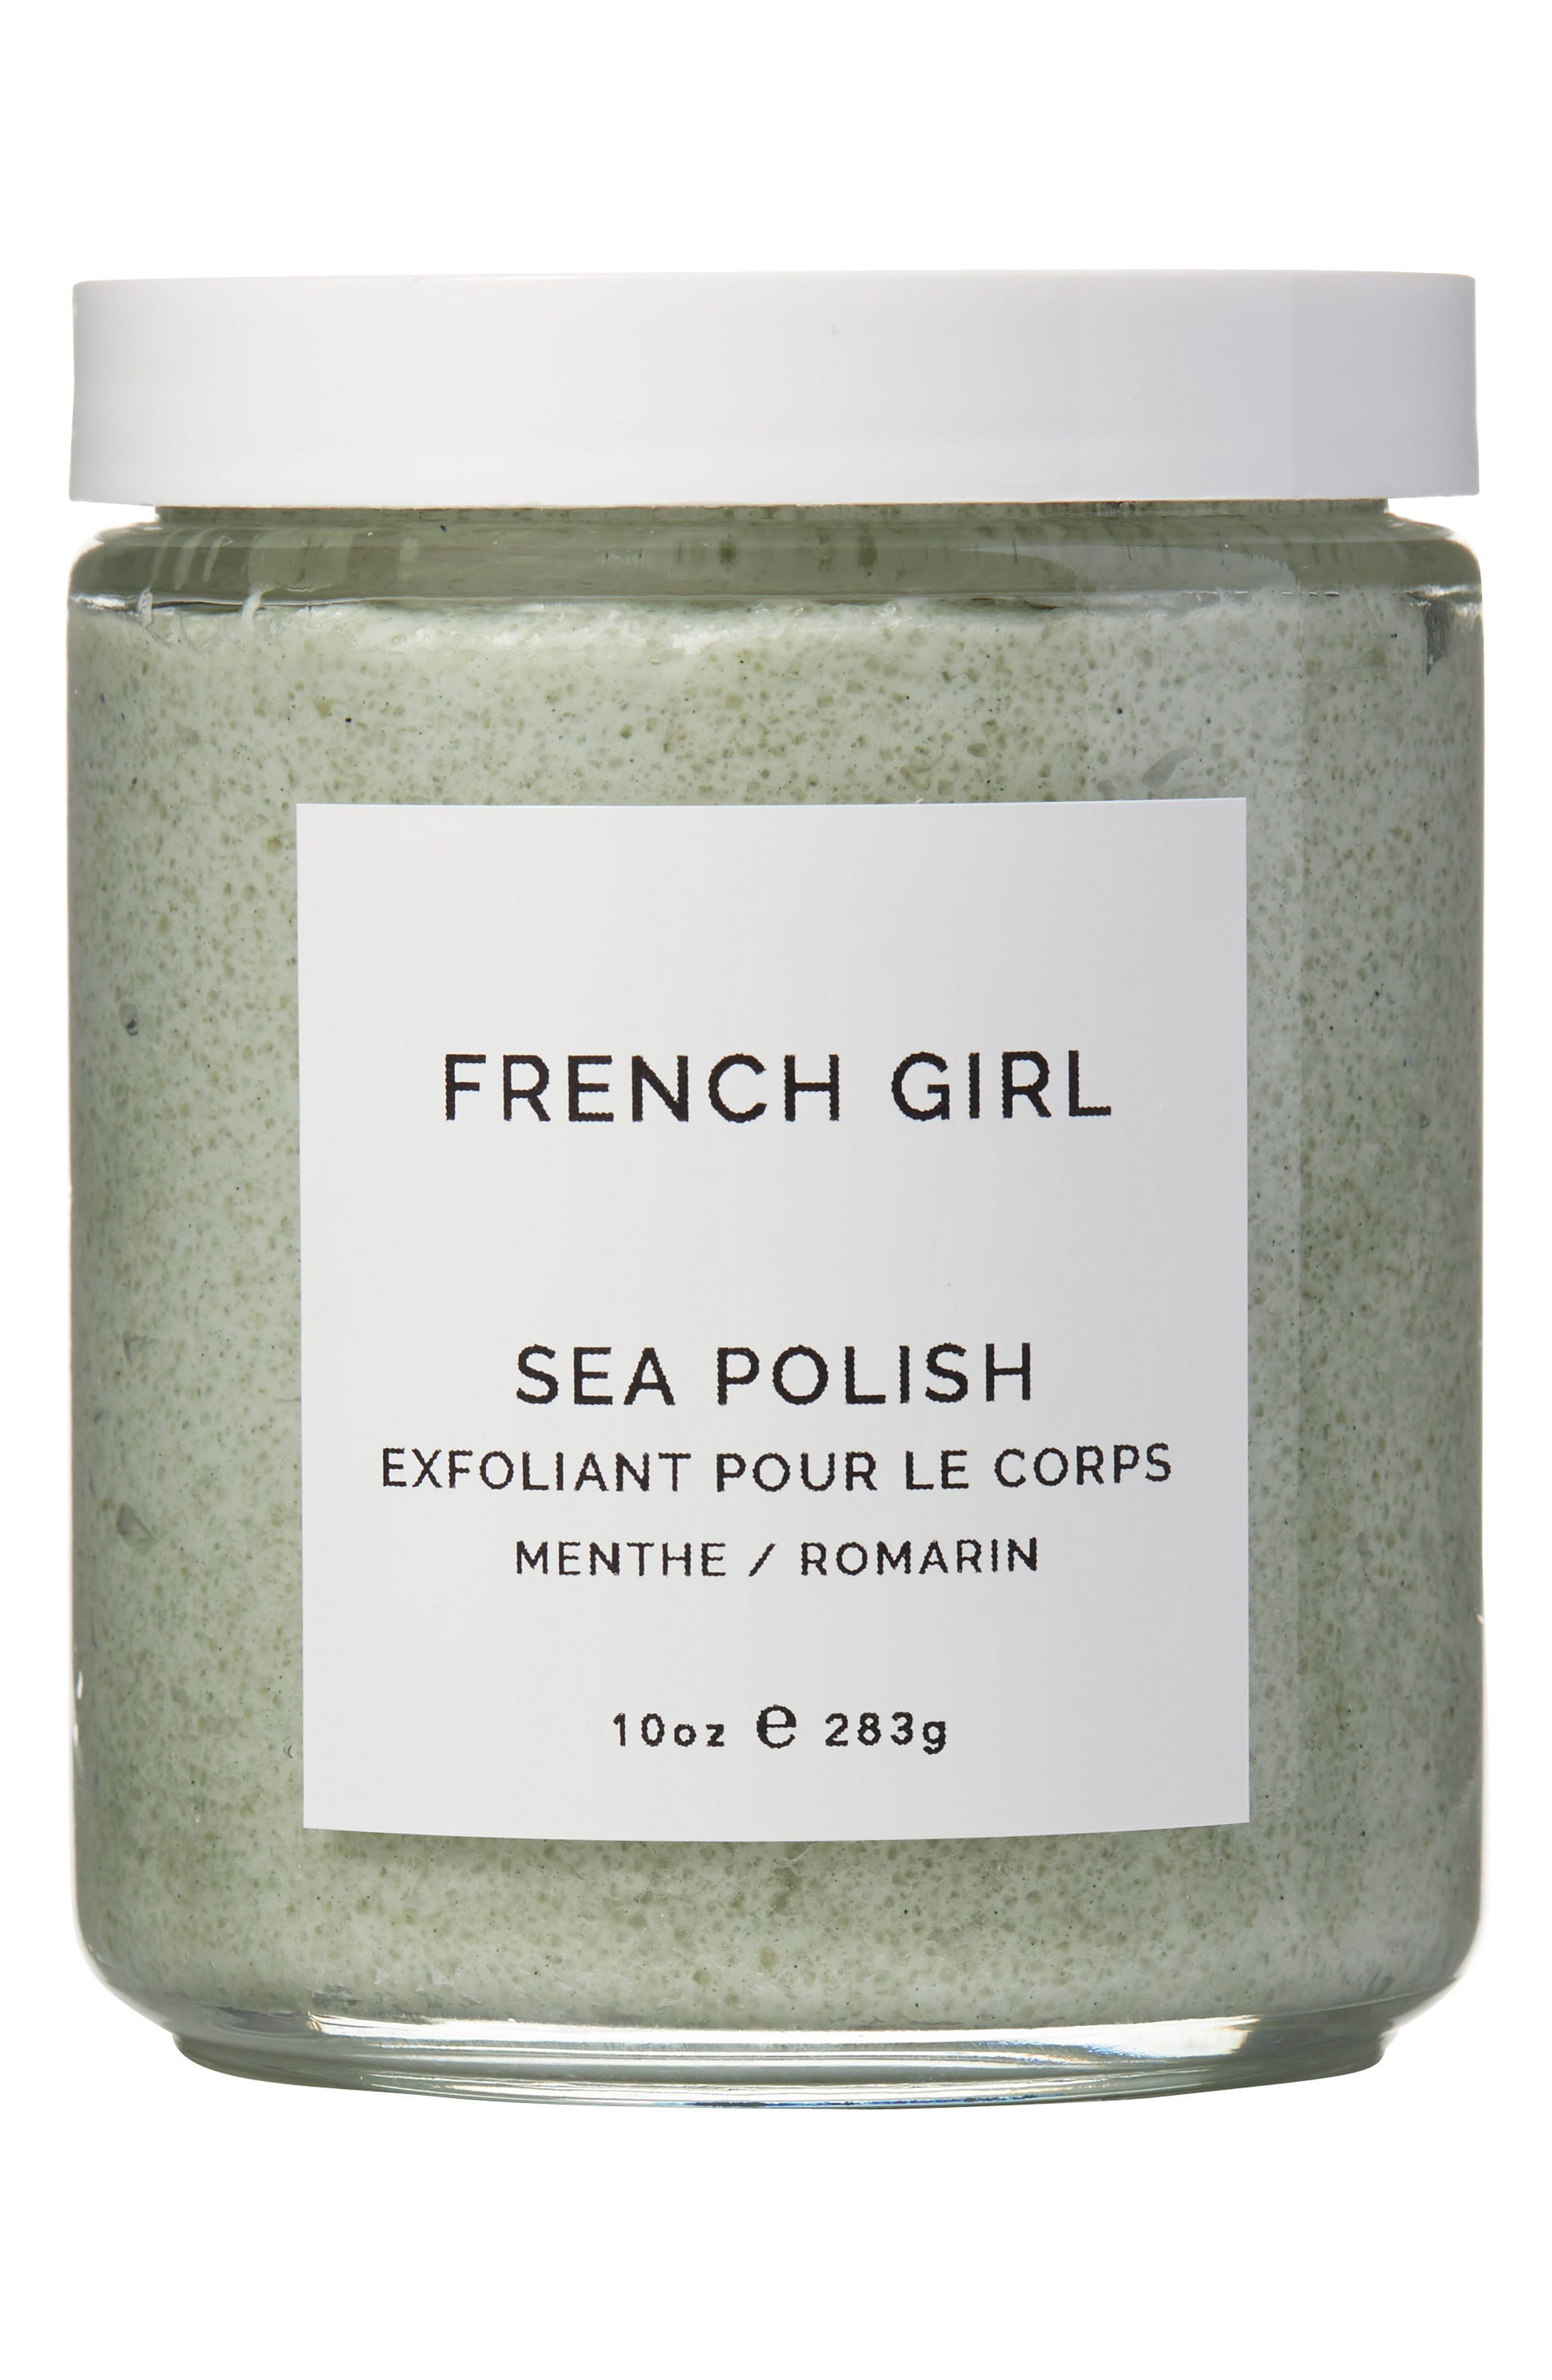 French Girl Organics Sea Polish Menthe / Romarin - $38. More info at Nordstrom.com/POP (Image: Nordstrom)